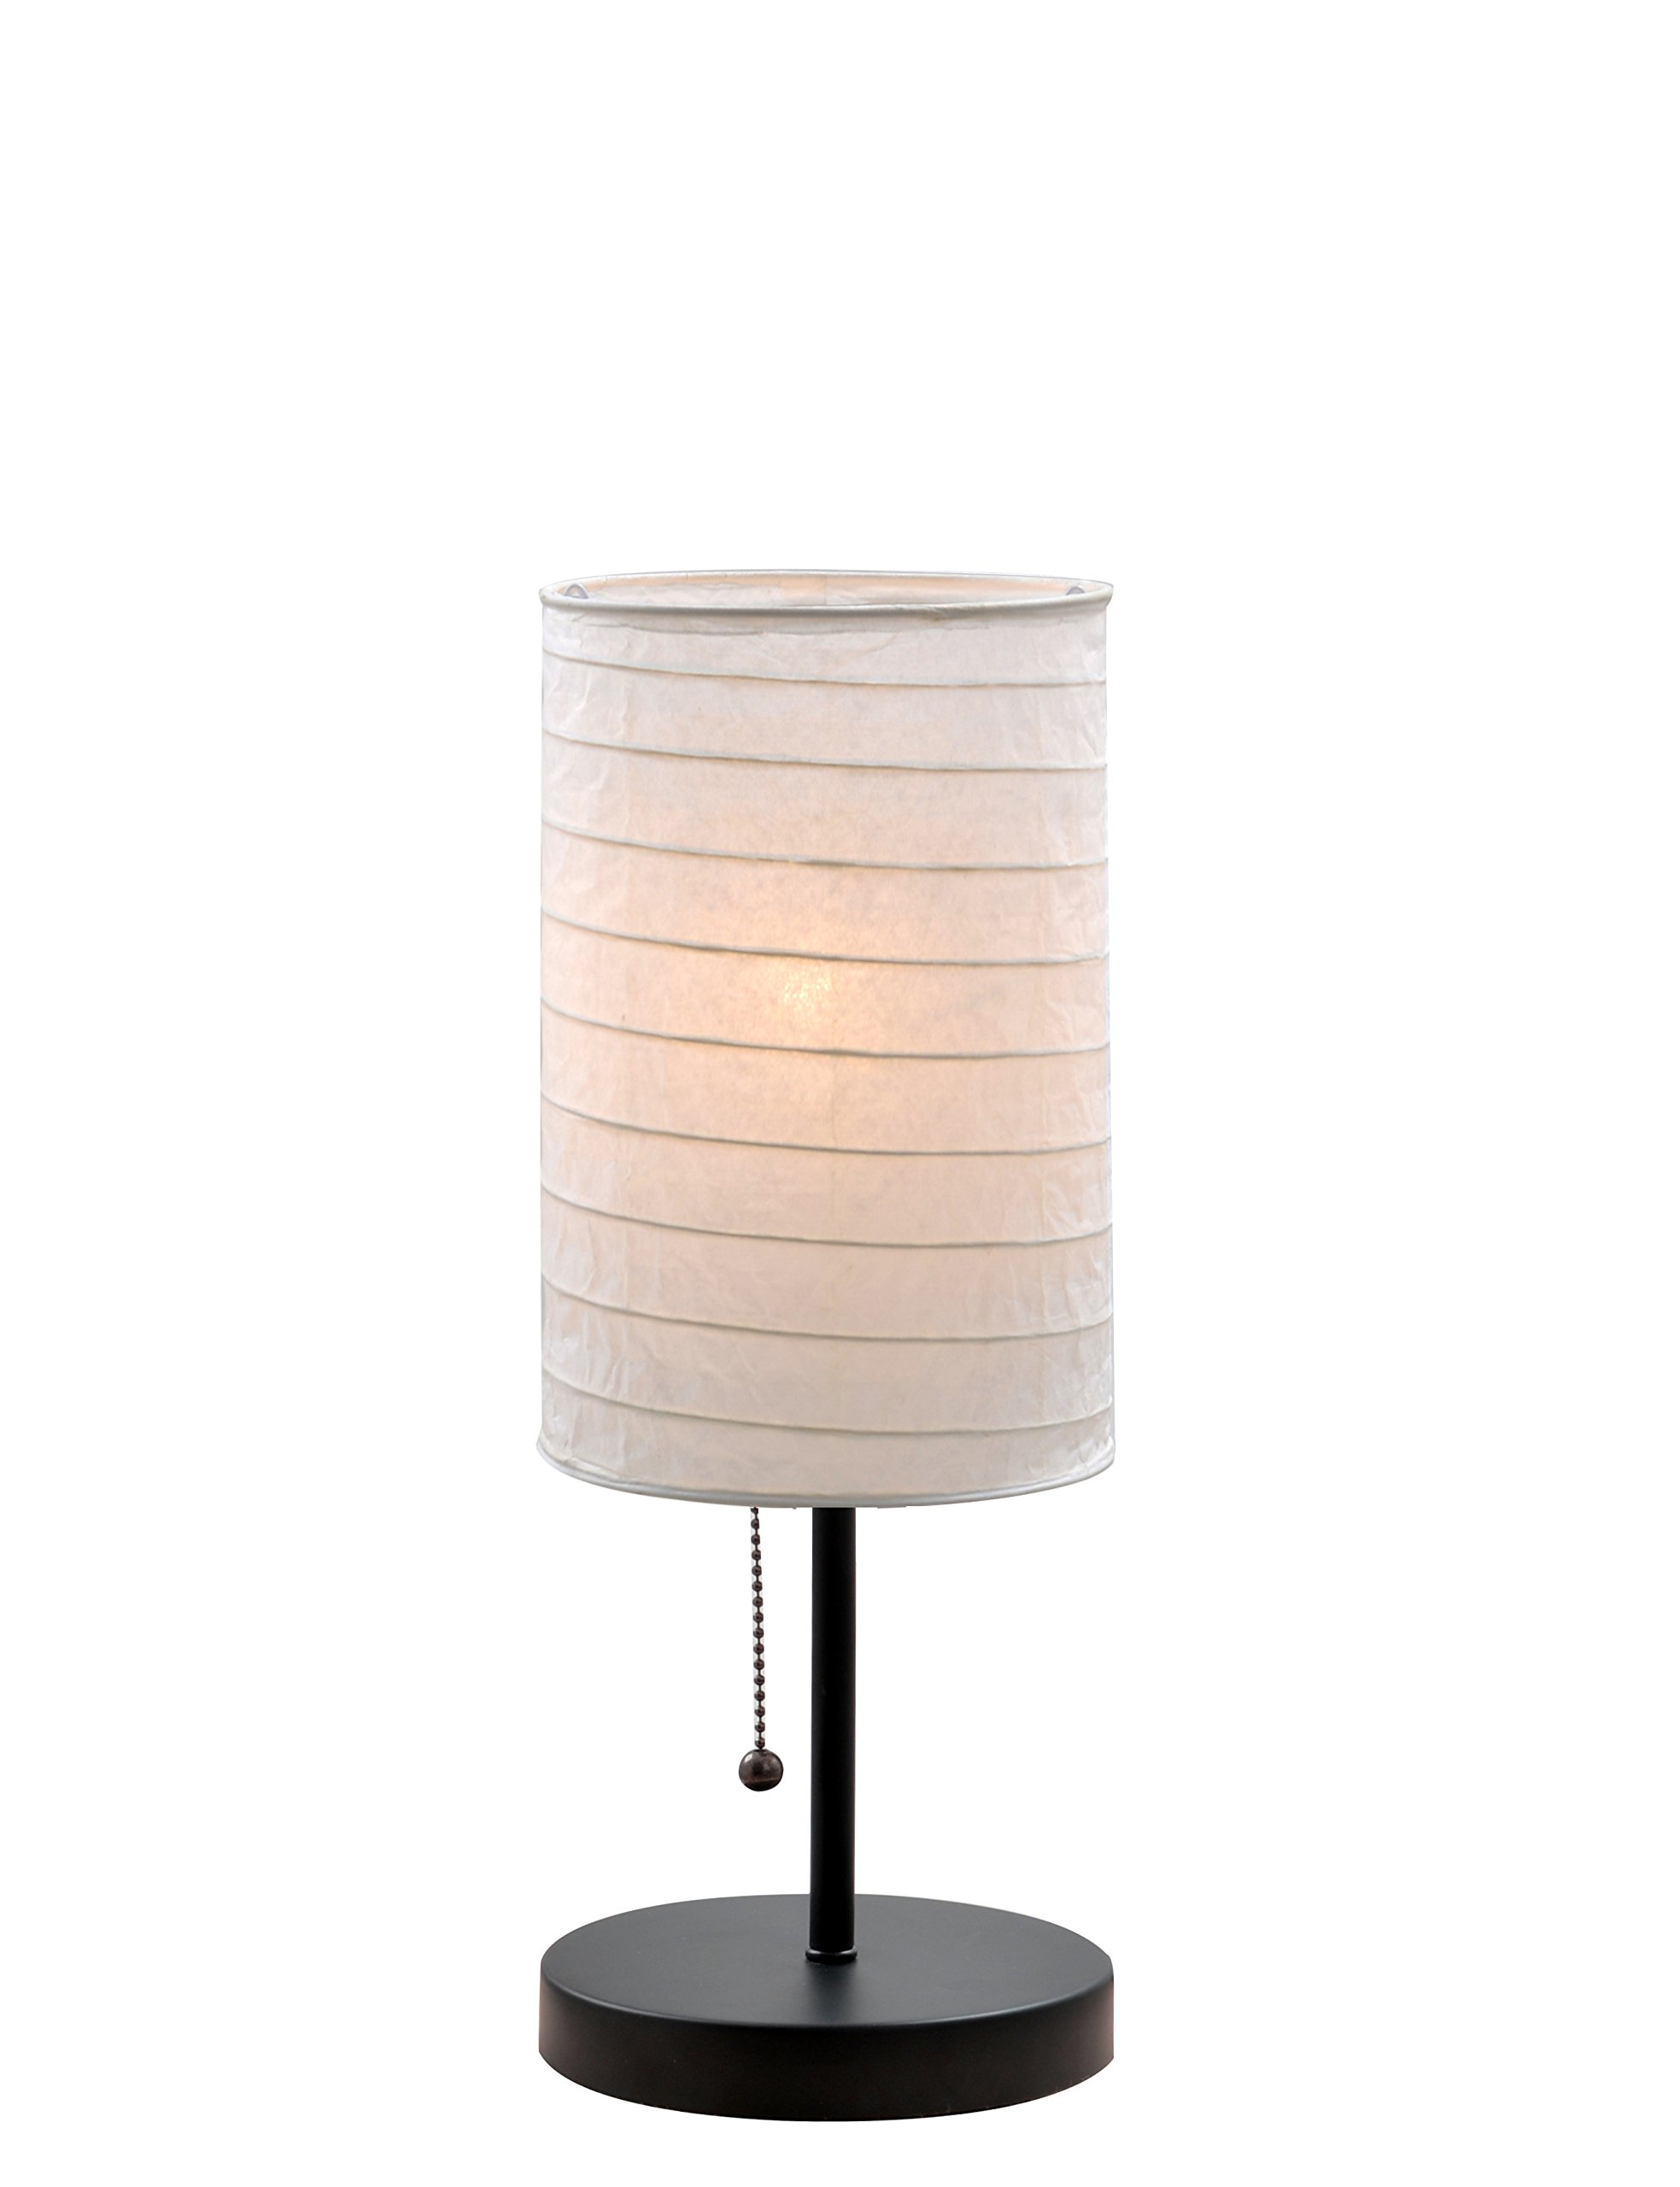 Catalina 18582-000 Paper Stick Accent Lamp with Rice Paper Shade, 15-Inch, Black